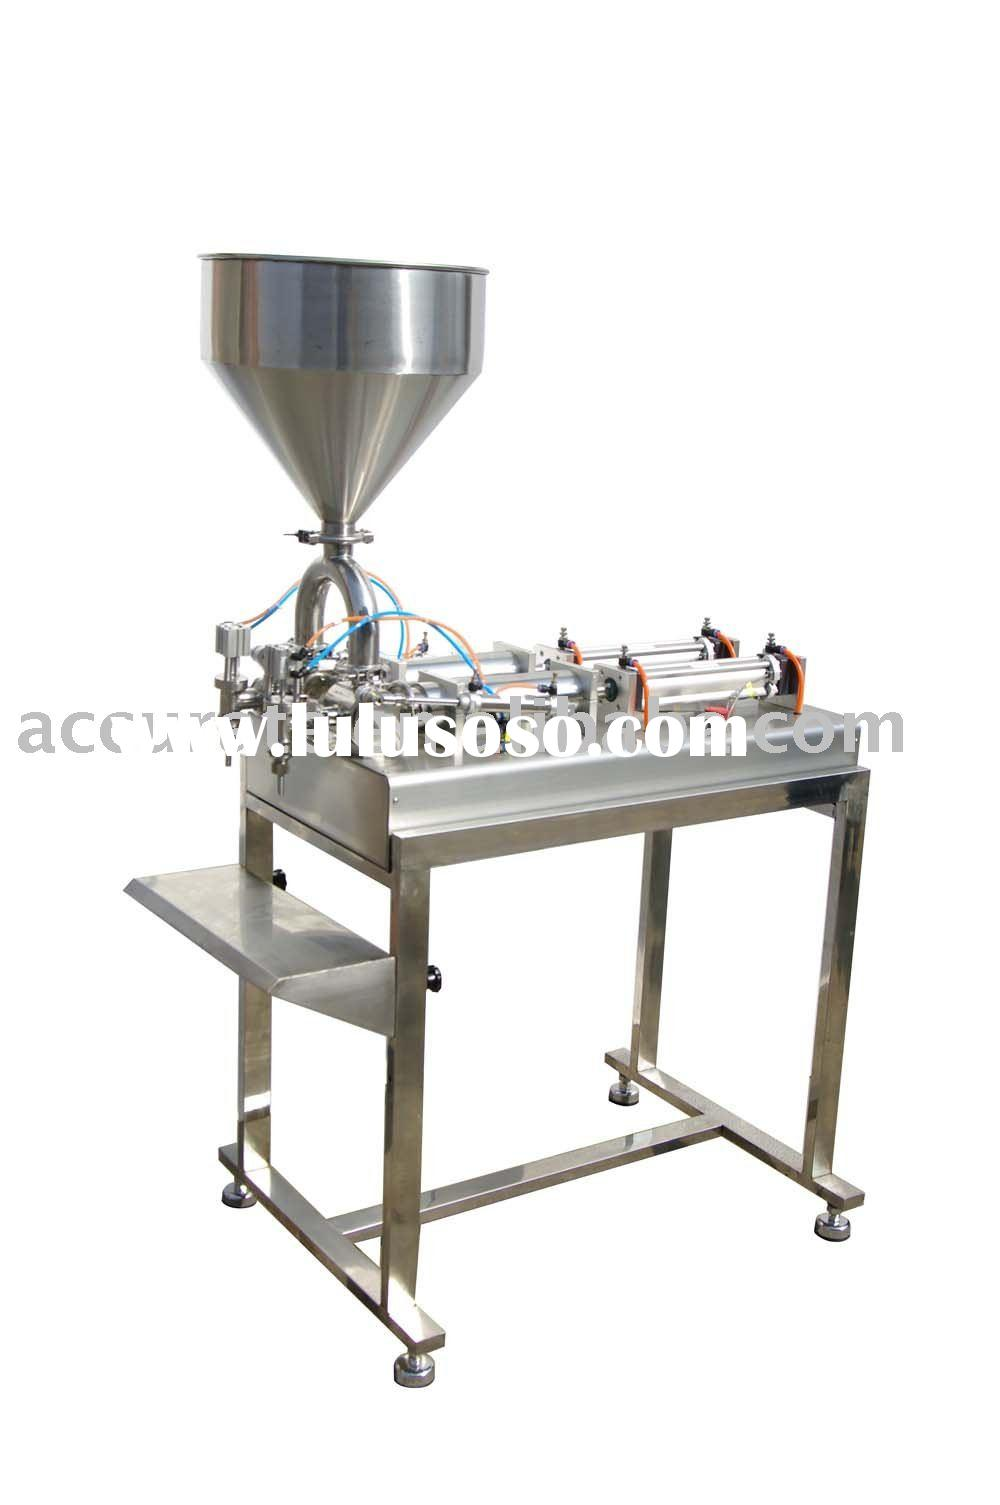 Pneumatic Paste/Liquid Filling Machine With Table